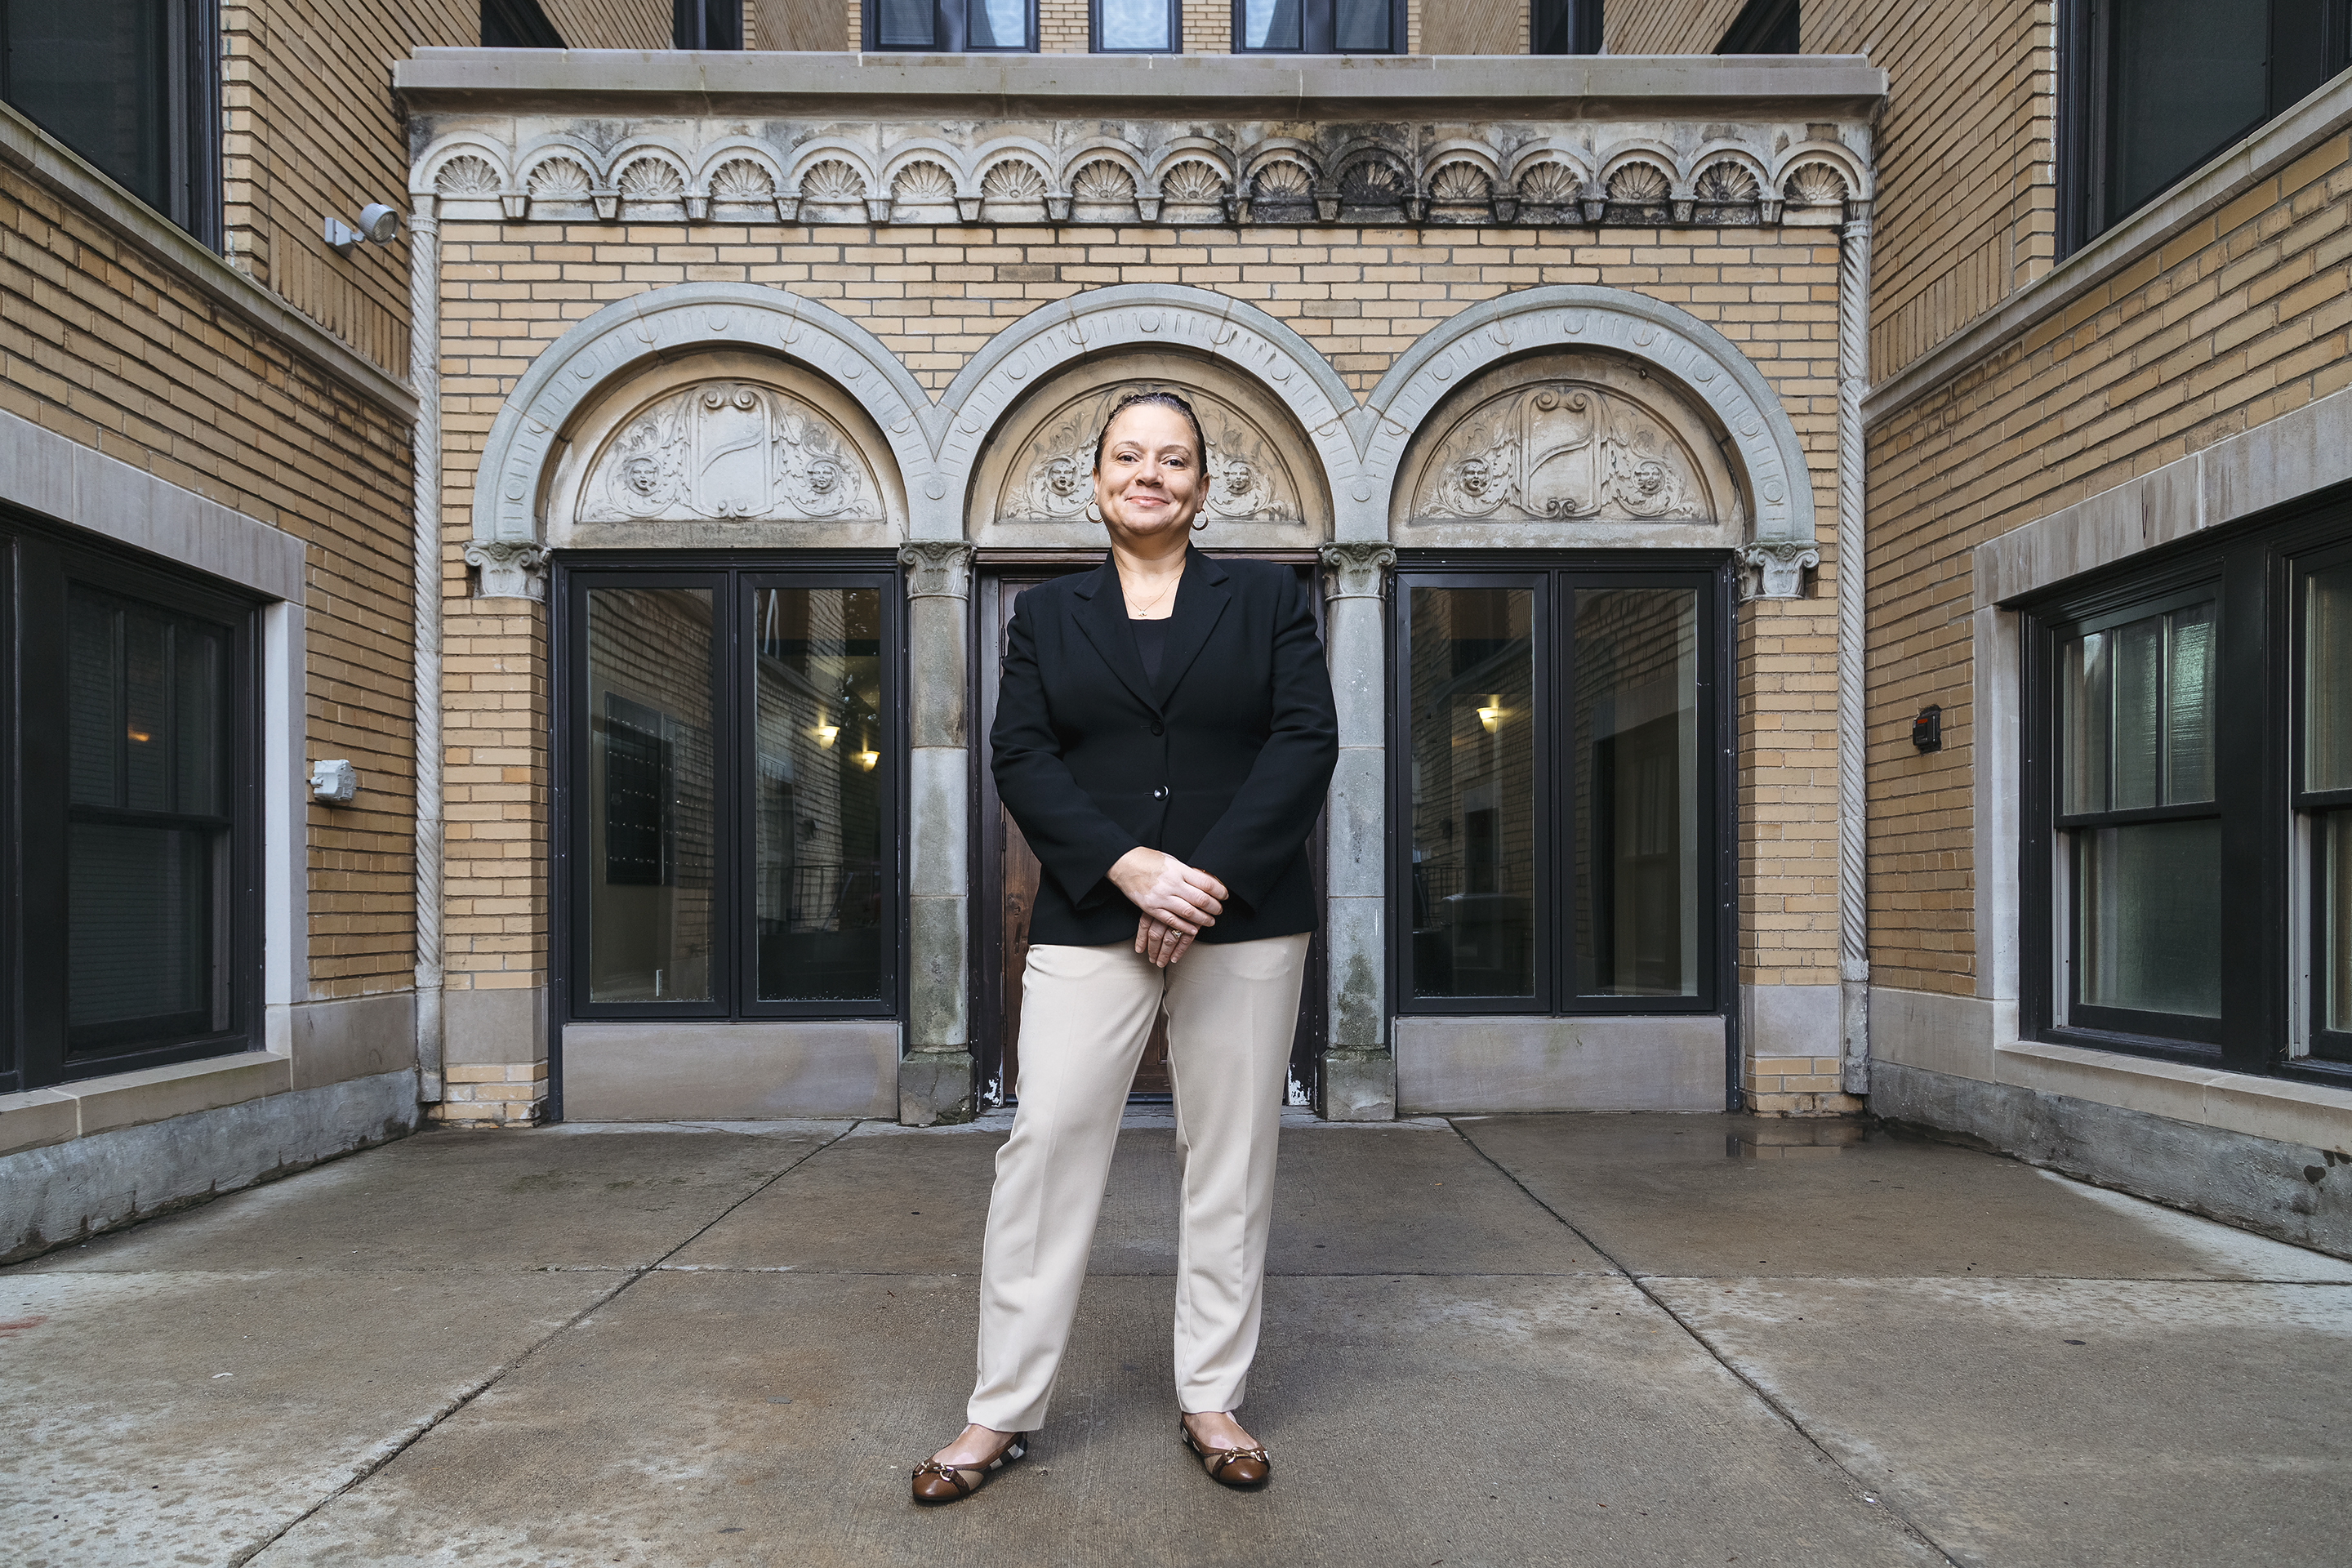 How JPMorgan Chase Is Fueling Detroit's Revival - Detroit